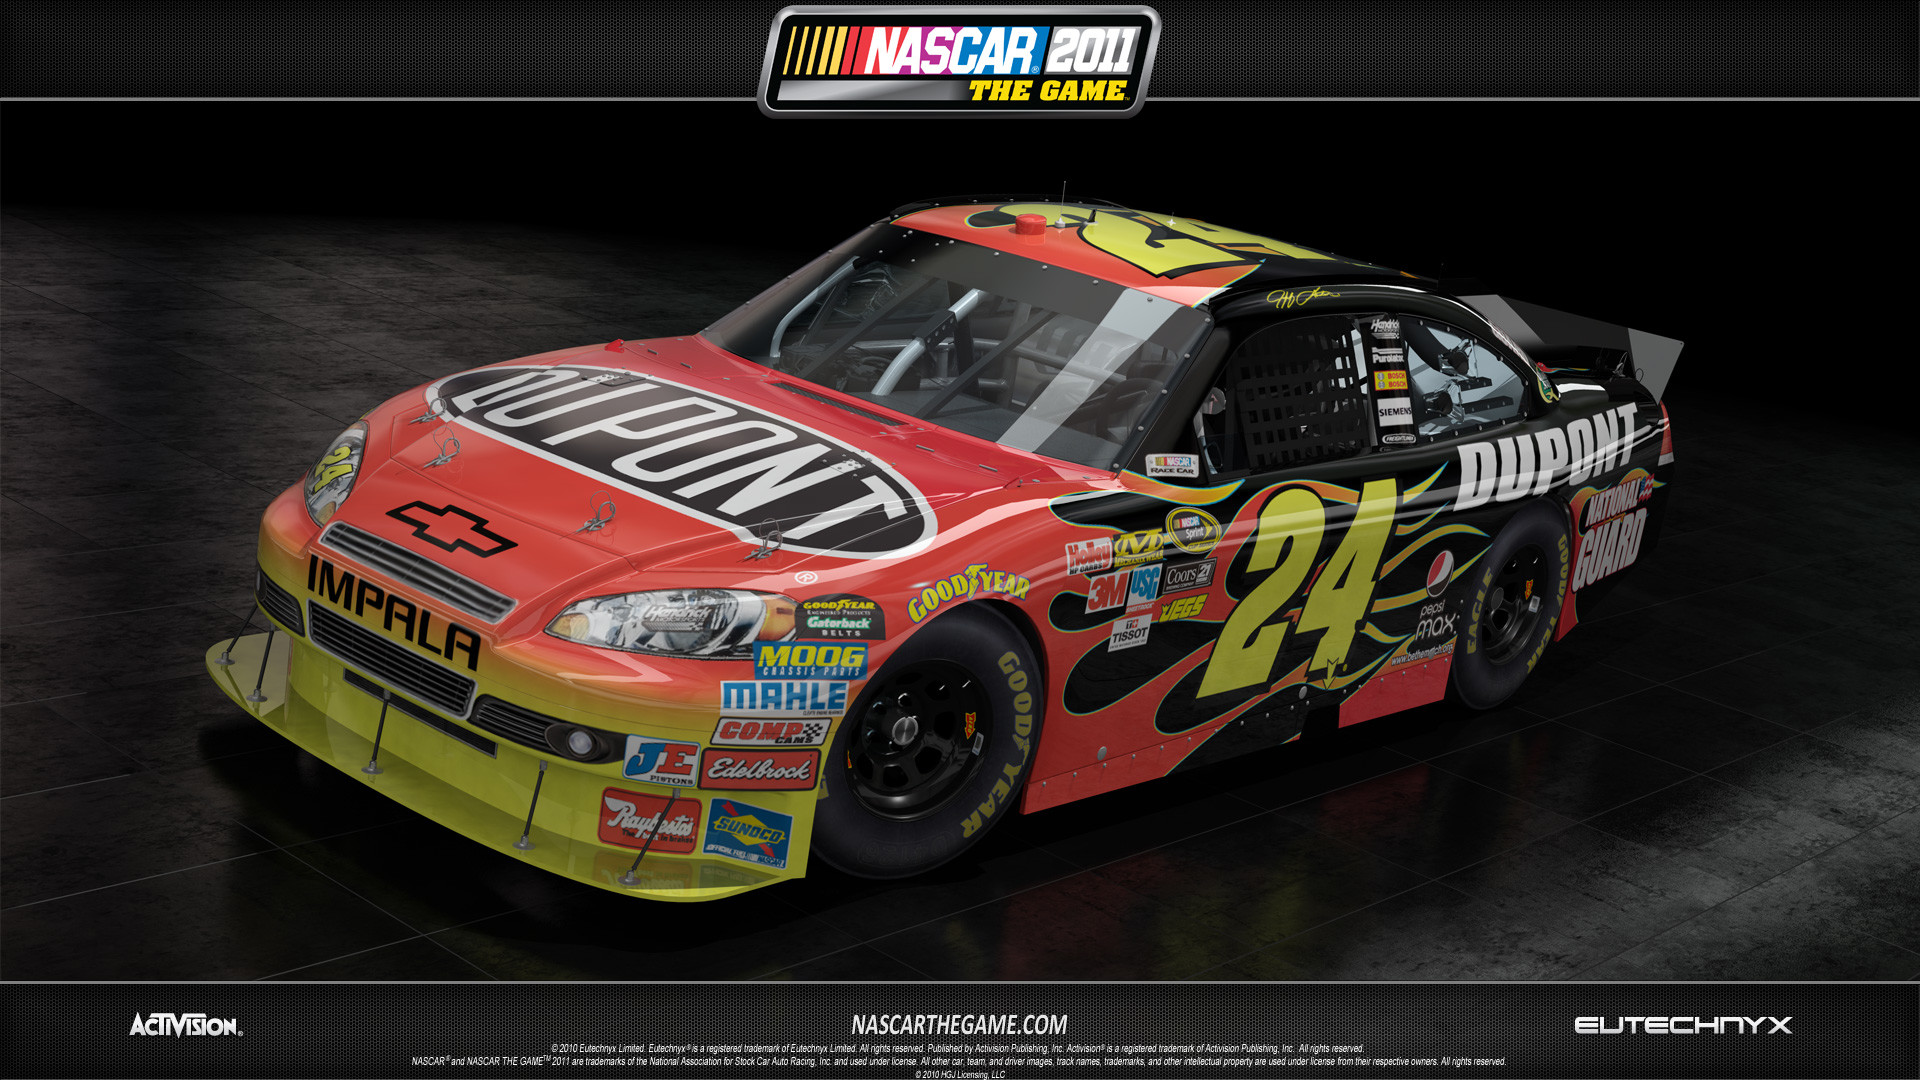 Jeff Gordon Wallpapers: Jeff Gordon Wallpaper Screensaver (59+ Images